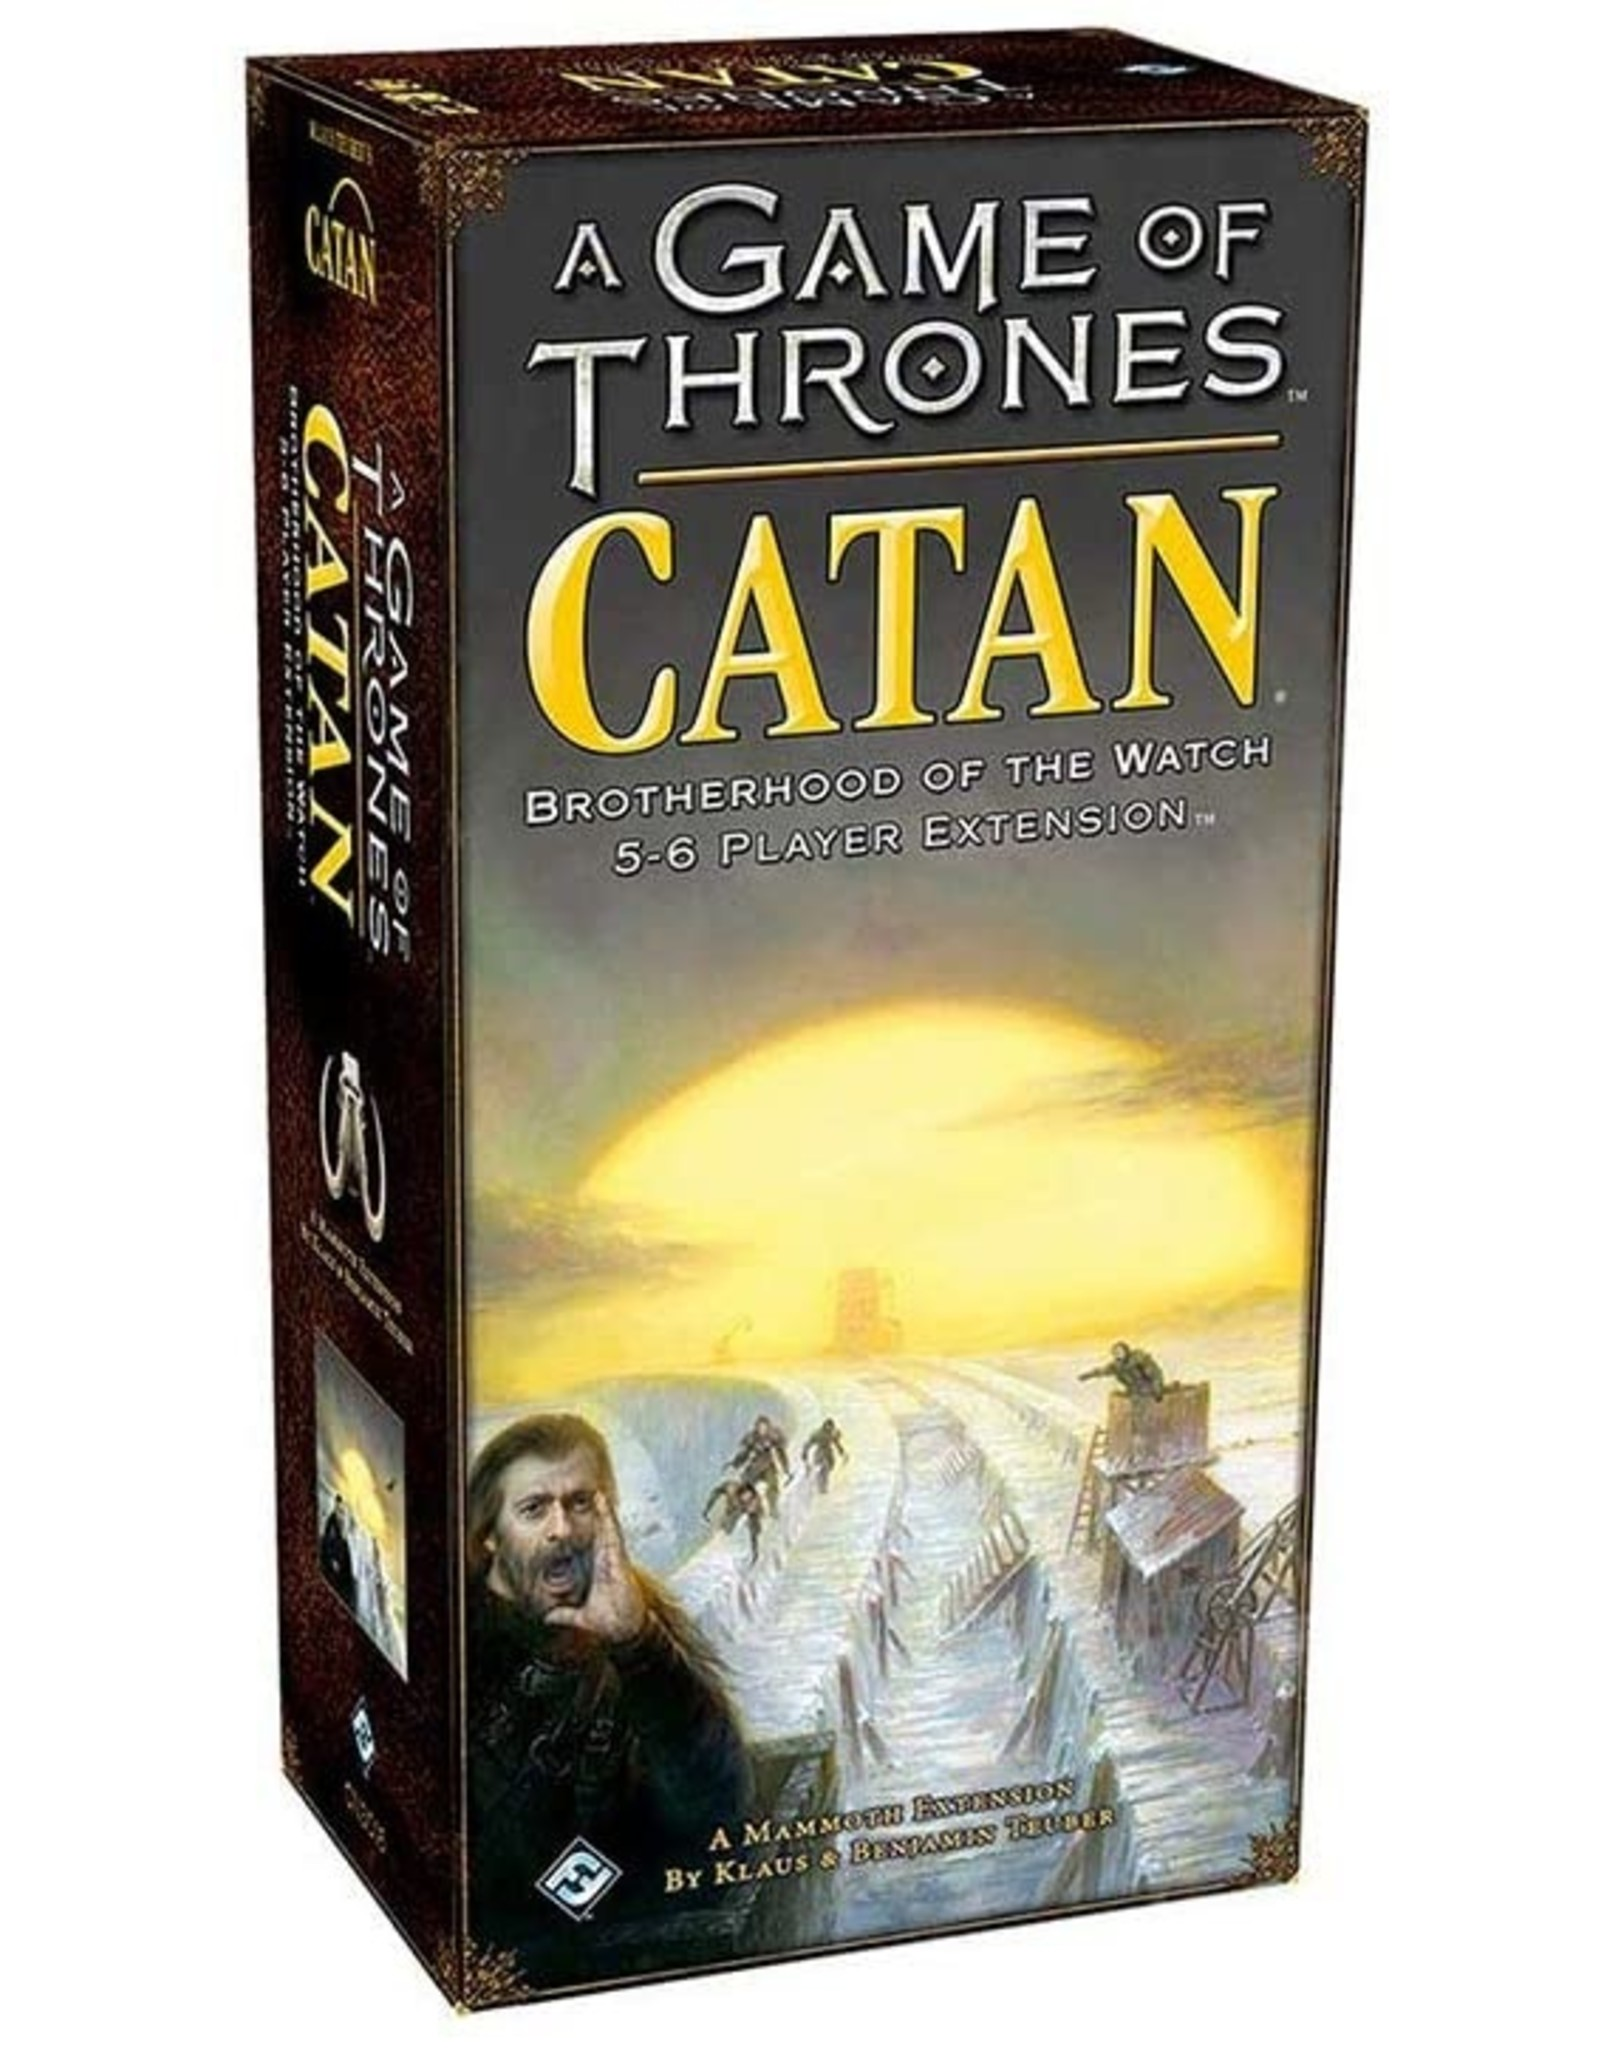 Mayfair Games A Game of Thrones Catan: Brotherhood of the Watch 5-6 Player Expansion